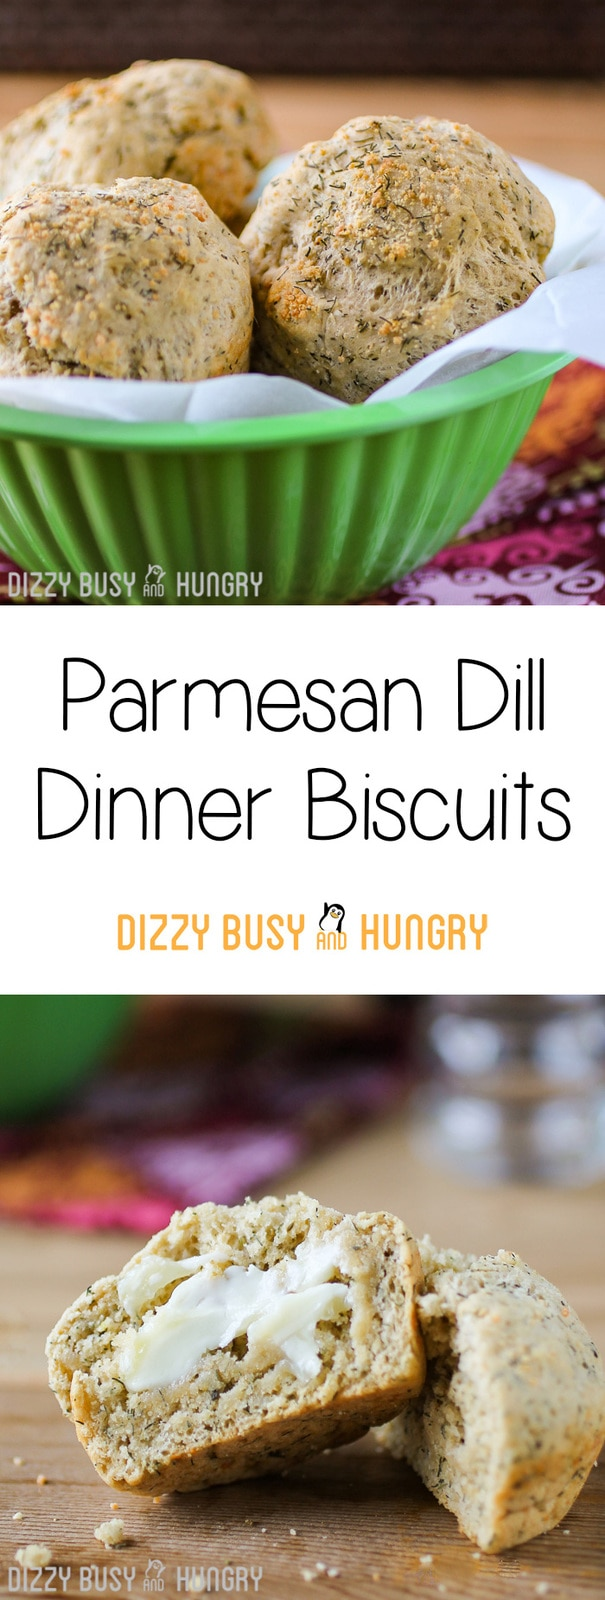 Parmesan Dill Dinner Biscuits | DizzyBusyandHungry.com - Delicious whole wheat dinner biscuits jazzed up with dill and parmesan cheese, perfect as starters or companions to just about any entree!